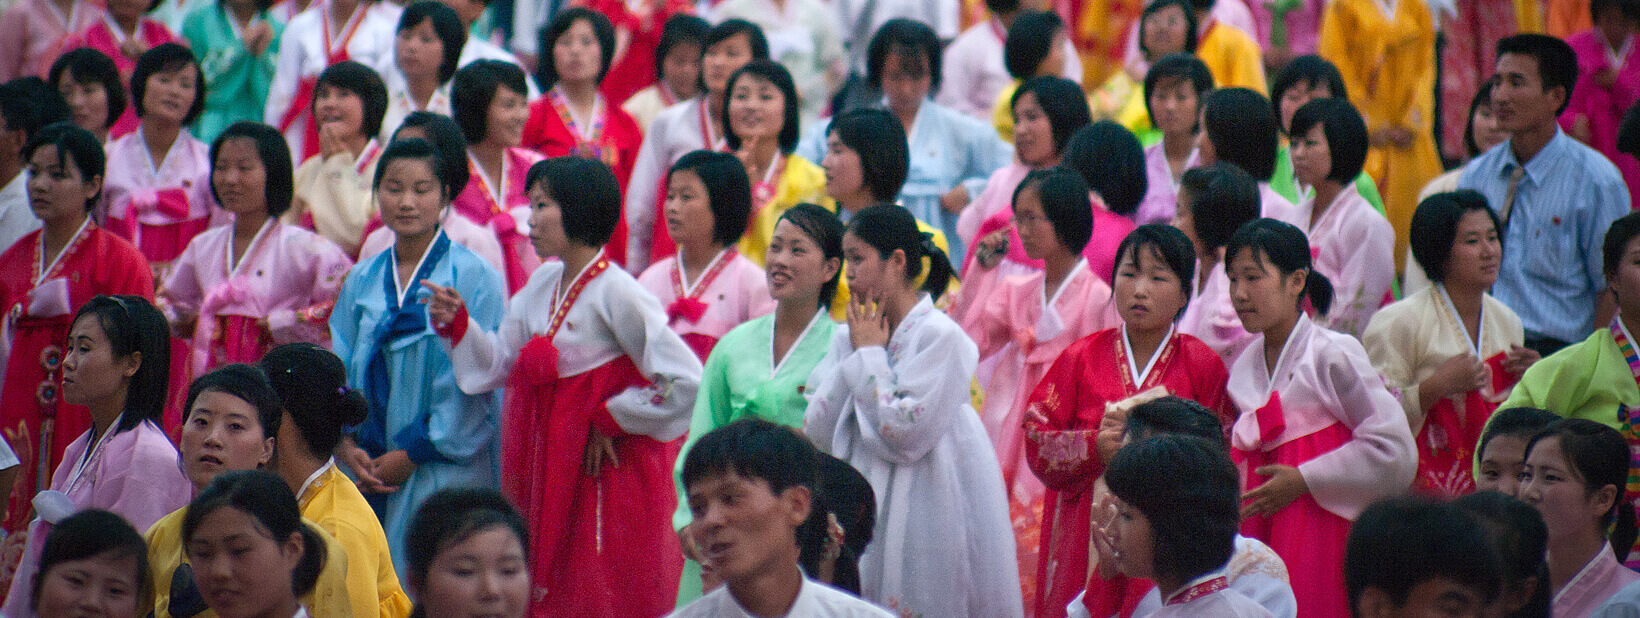 National Day mass dance in Pyongyang (Photo: Jen Morgan/Flickr)